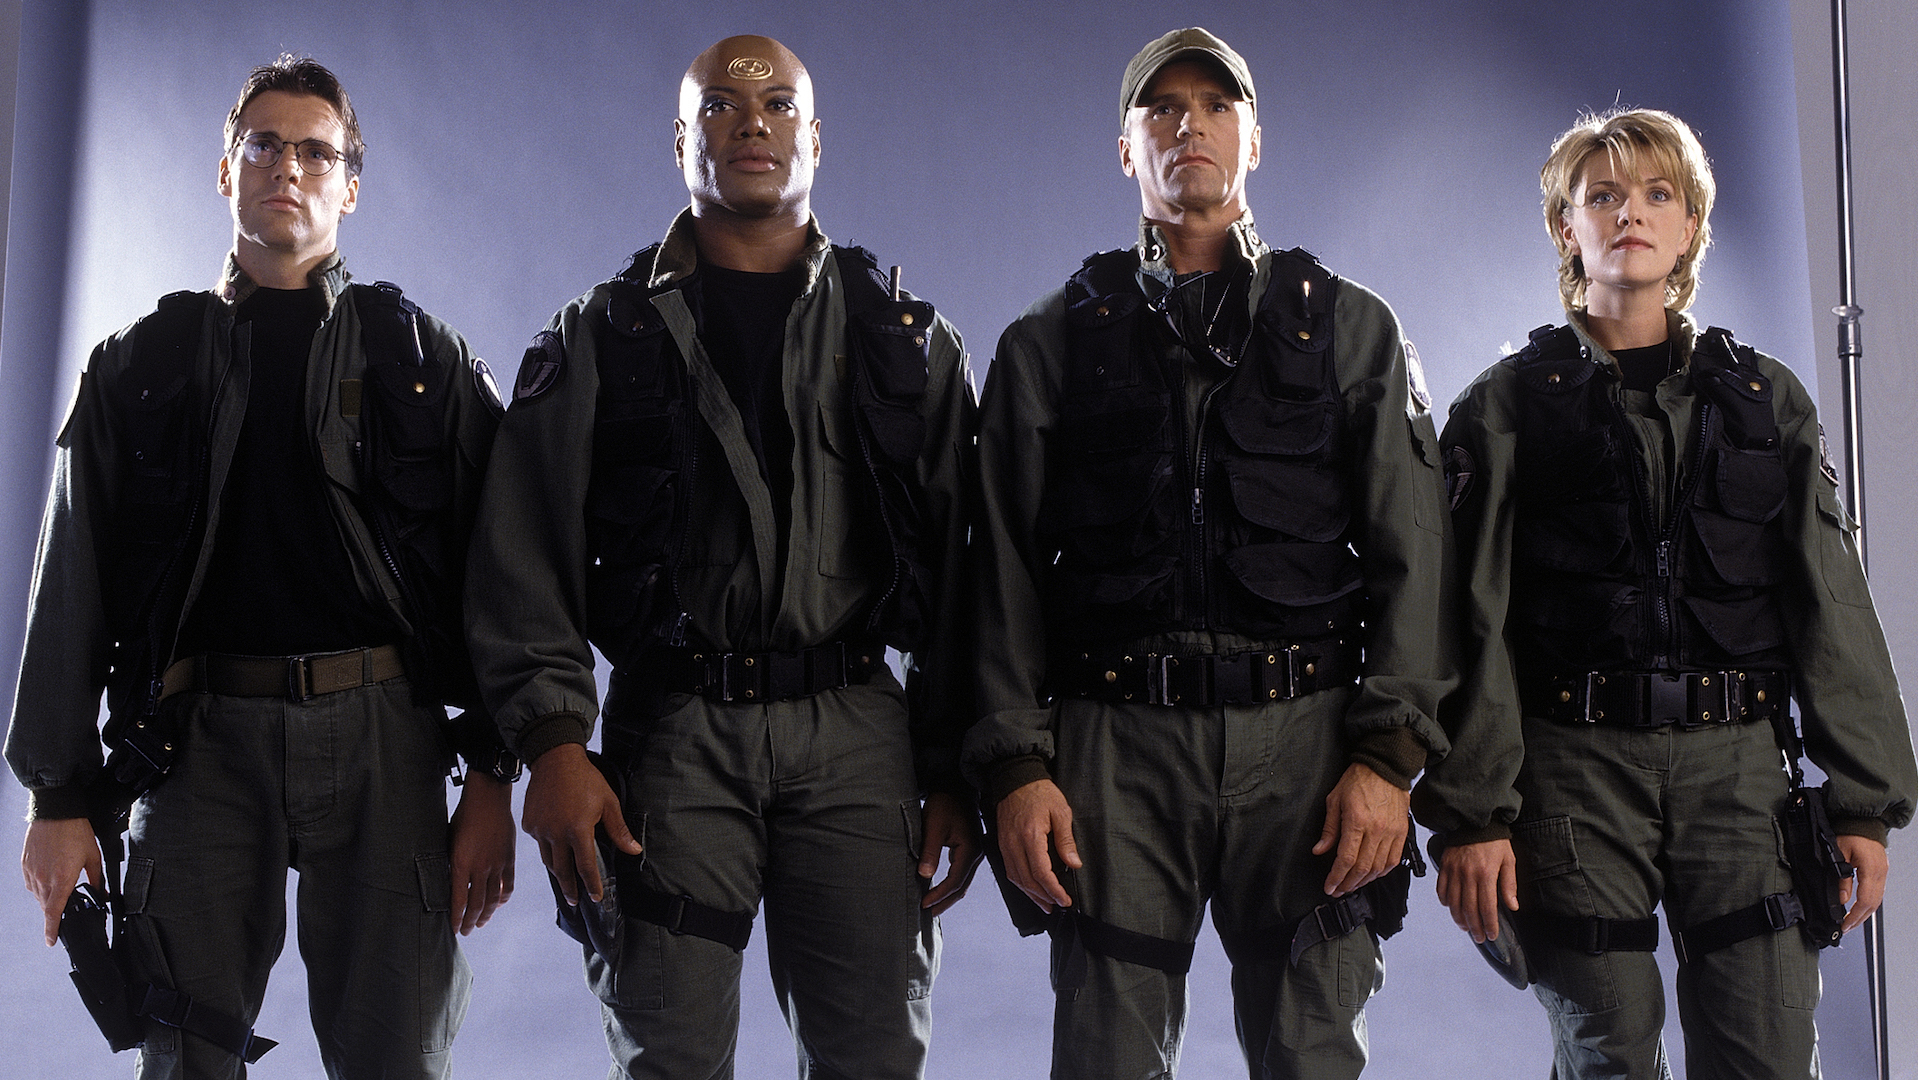 The 10 Best Episodes of Stargate SG-1